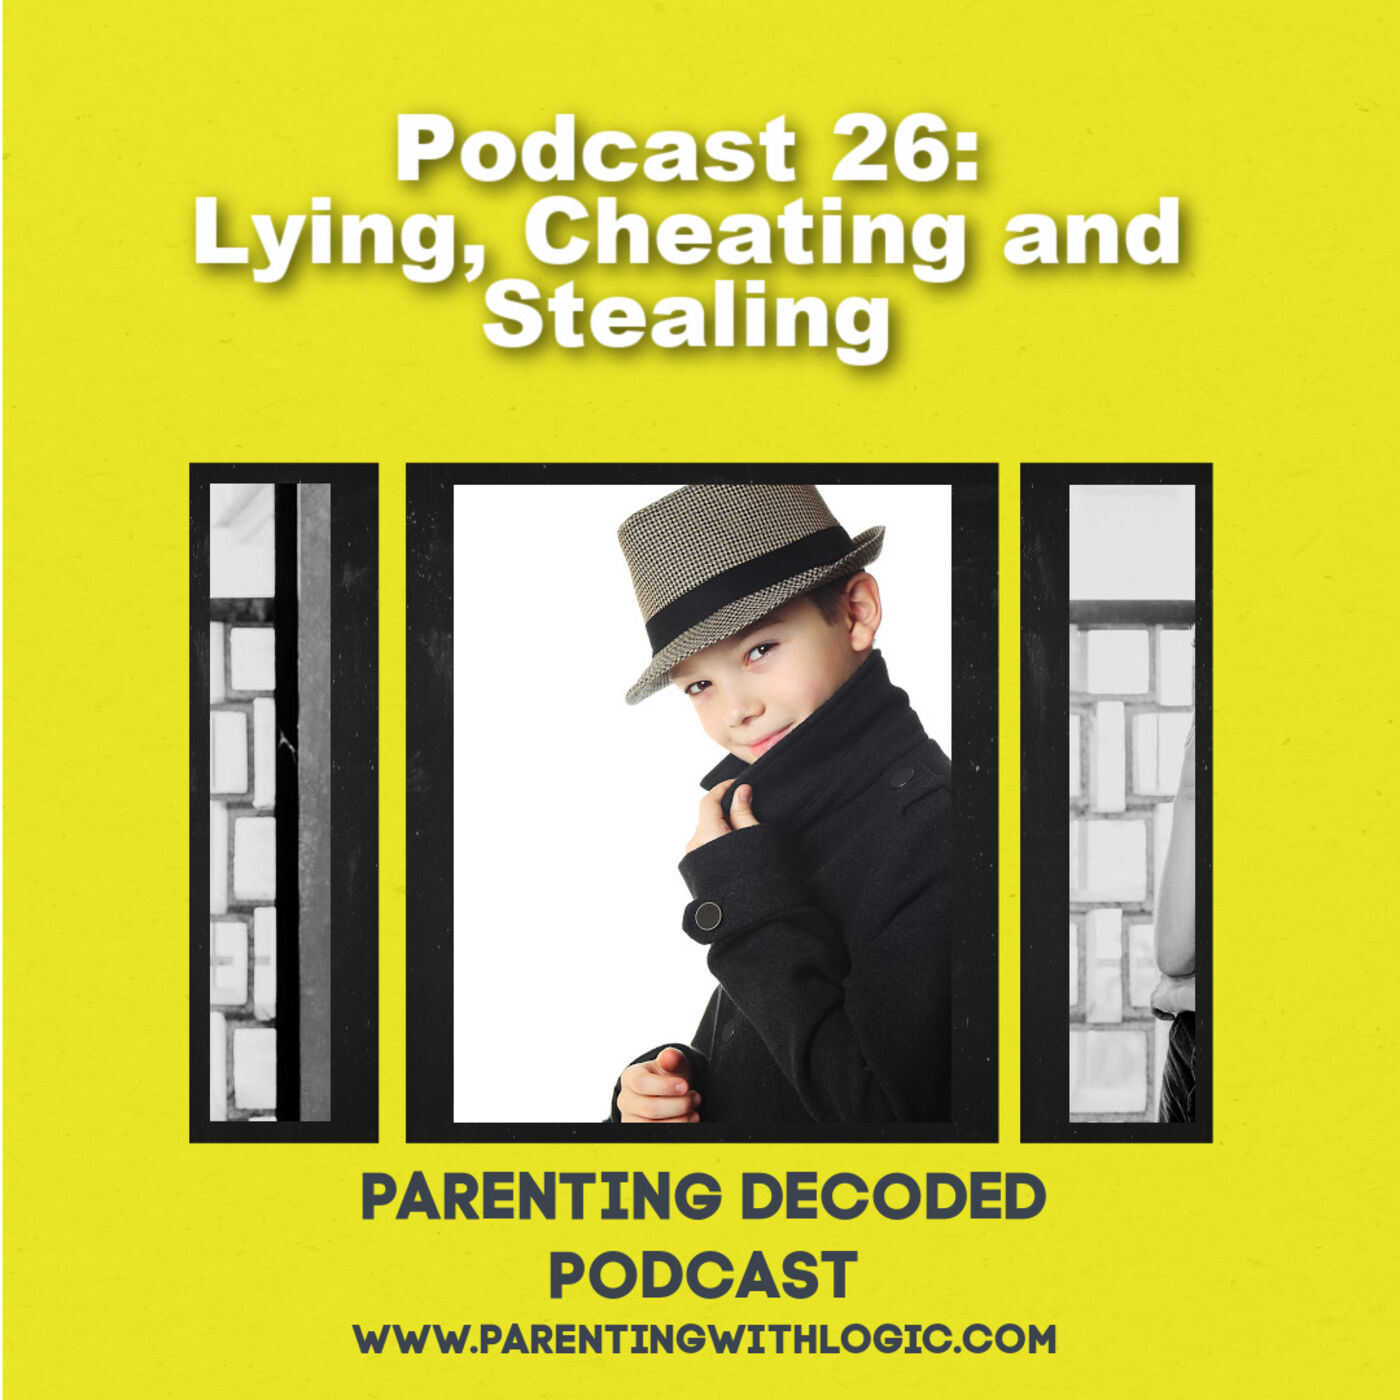 26 - Lying, Cheating and Stealing: What to do?